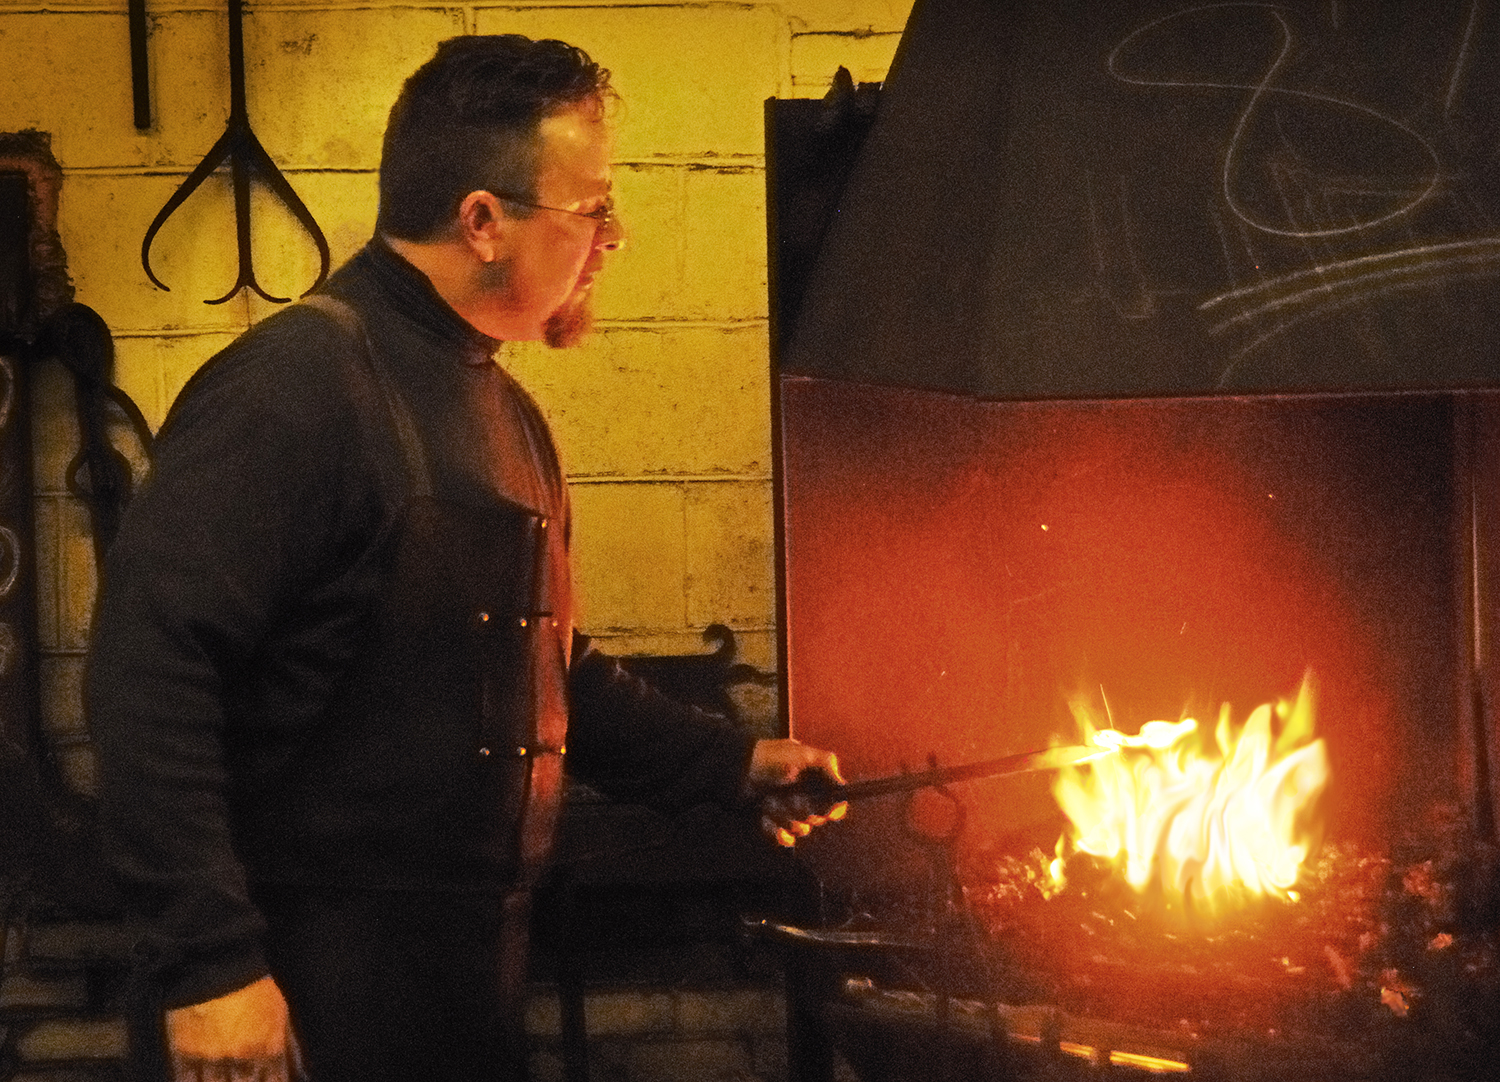 At the Forge by Sally Wiener Grotta for upload